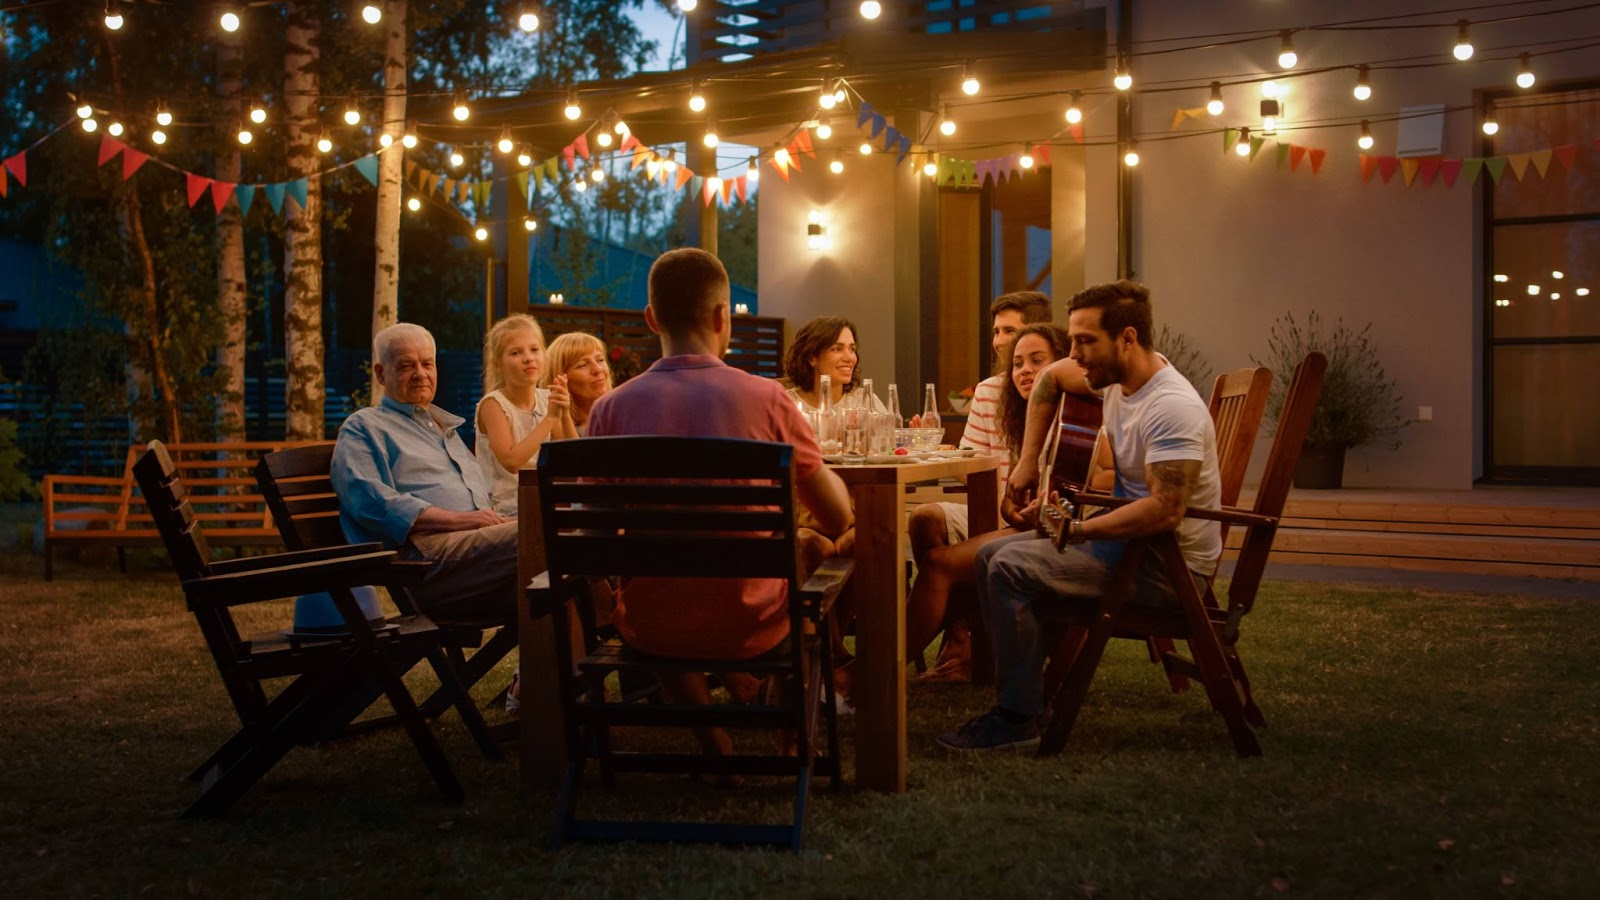 Outdoor dinner party with people sitting around a table